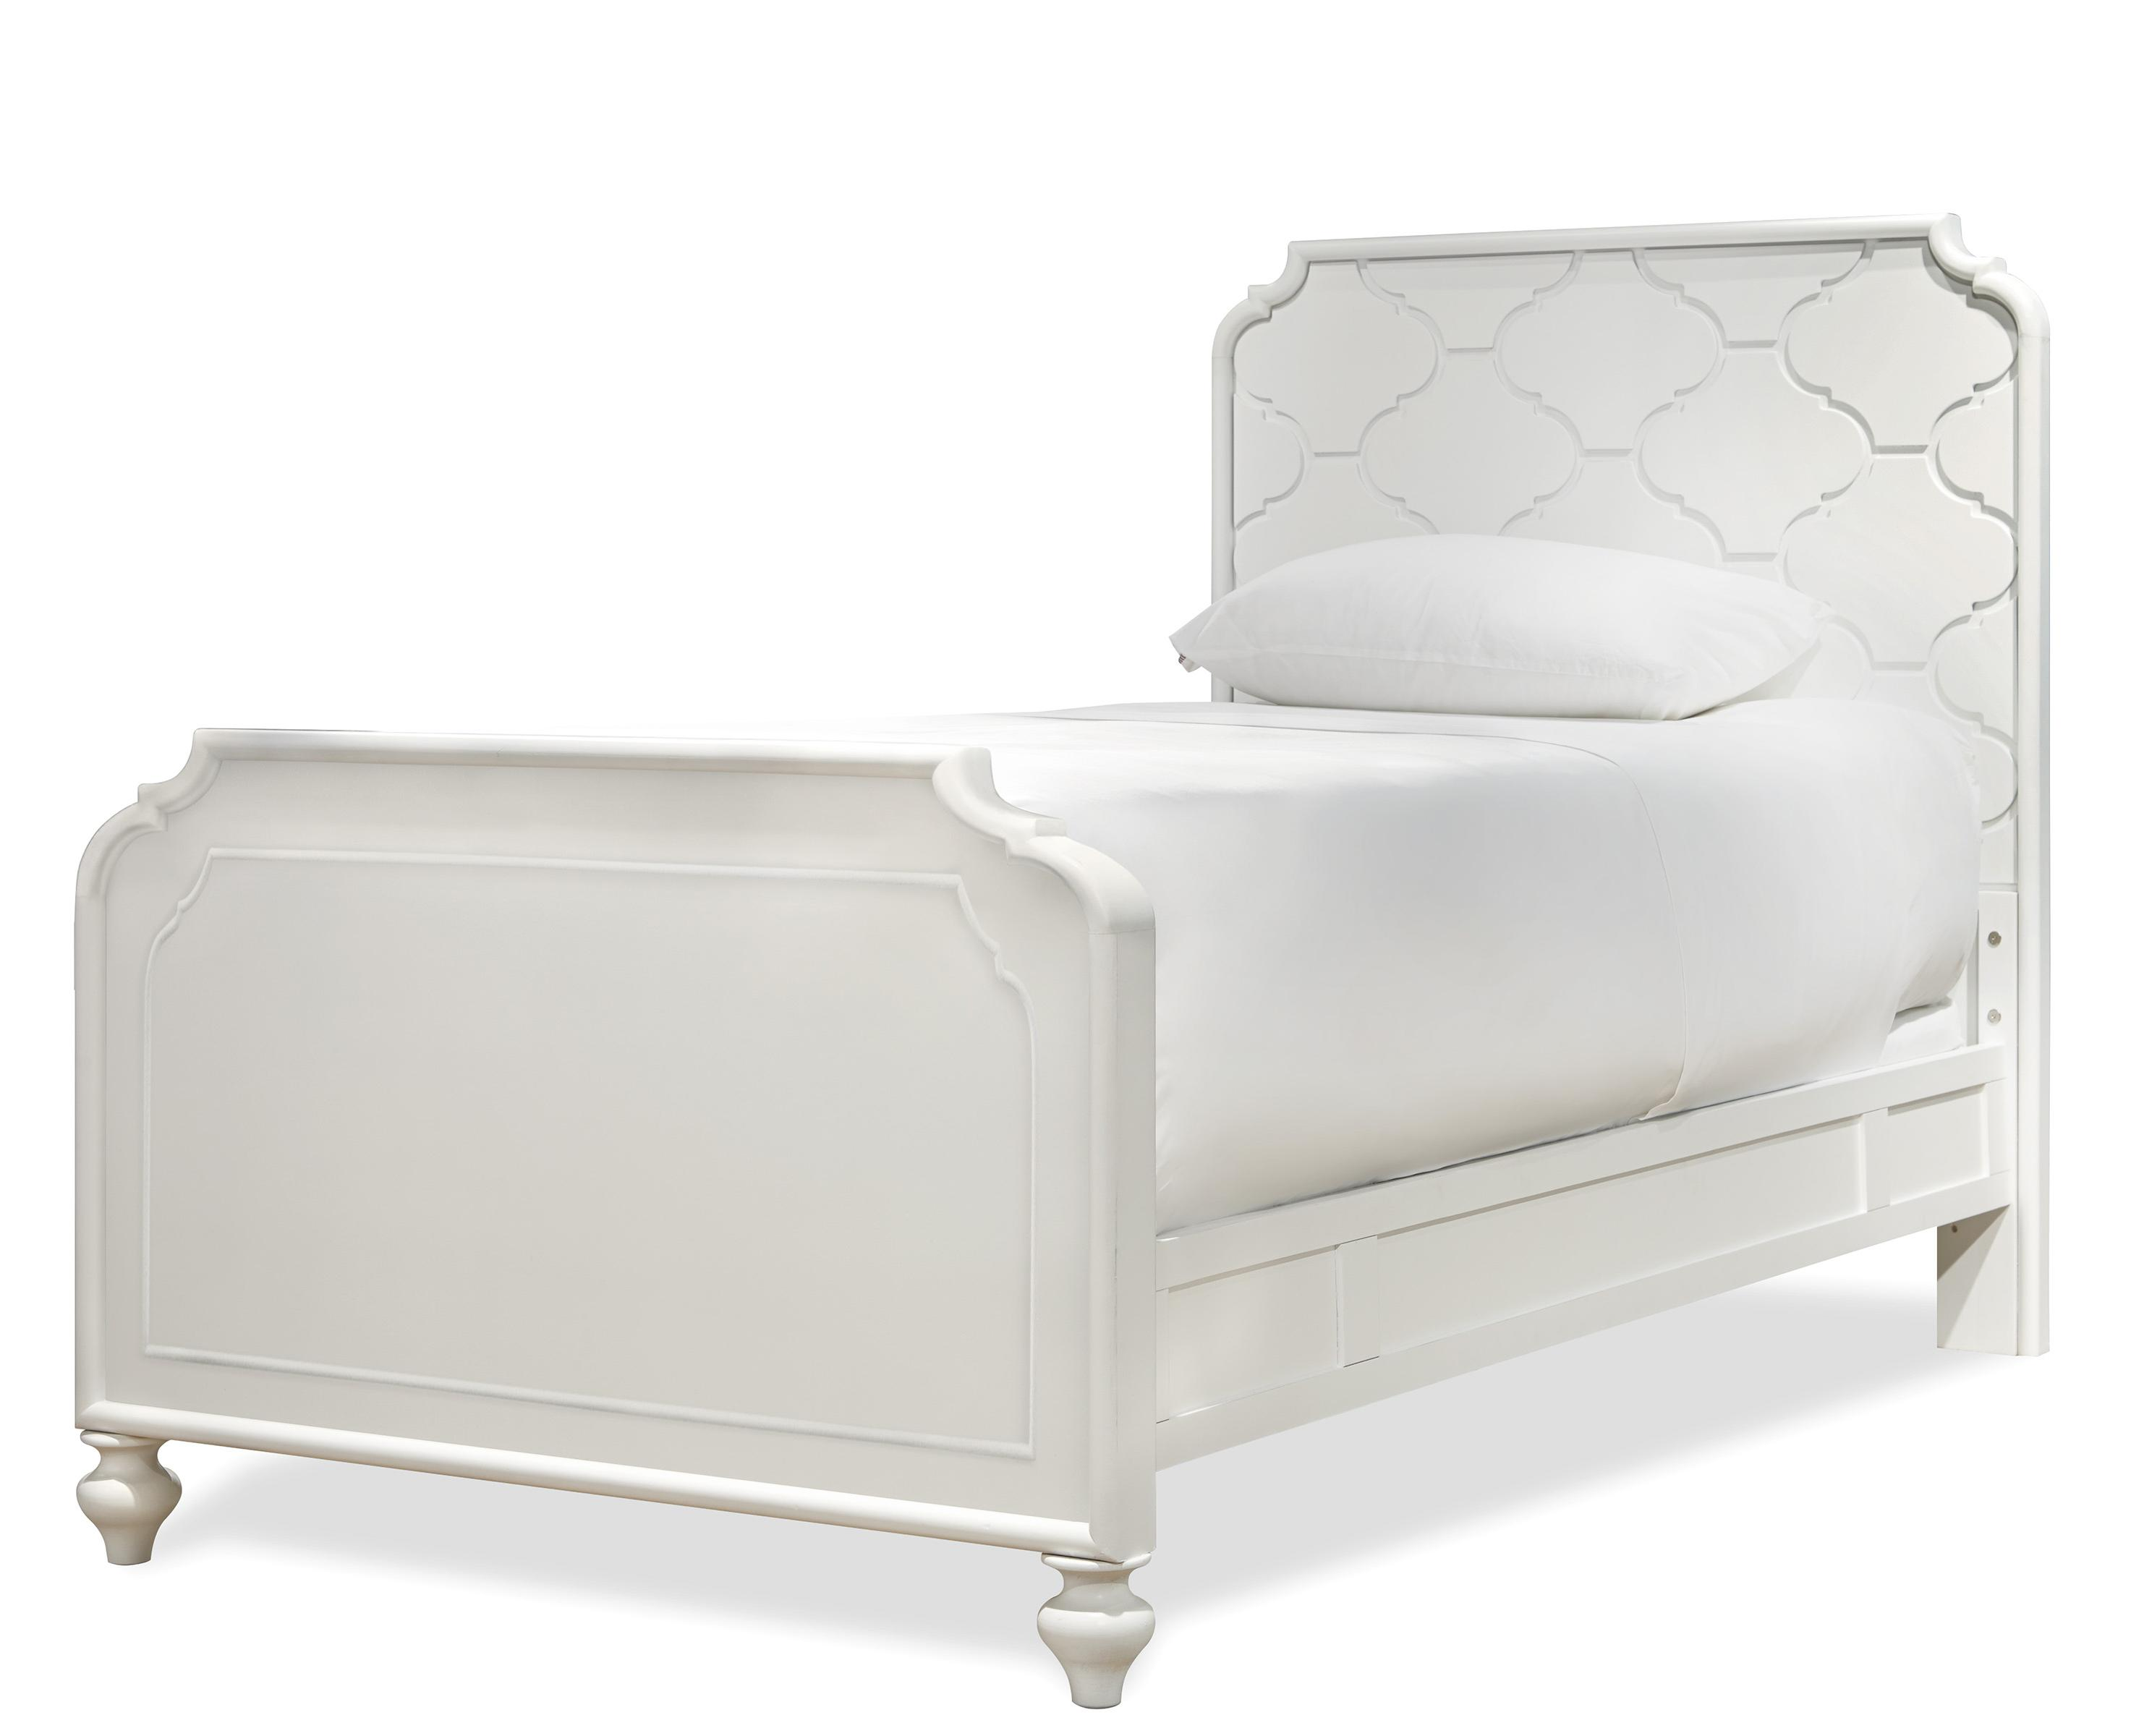 Morris Home Furnishings Anaheim Anaheim Twin Panel Bed - Item Number: 437A035